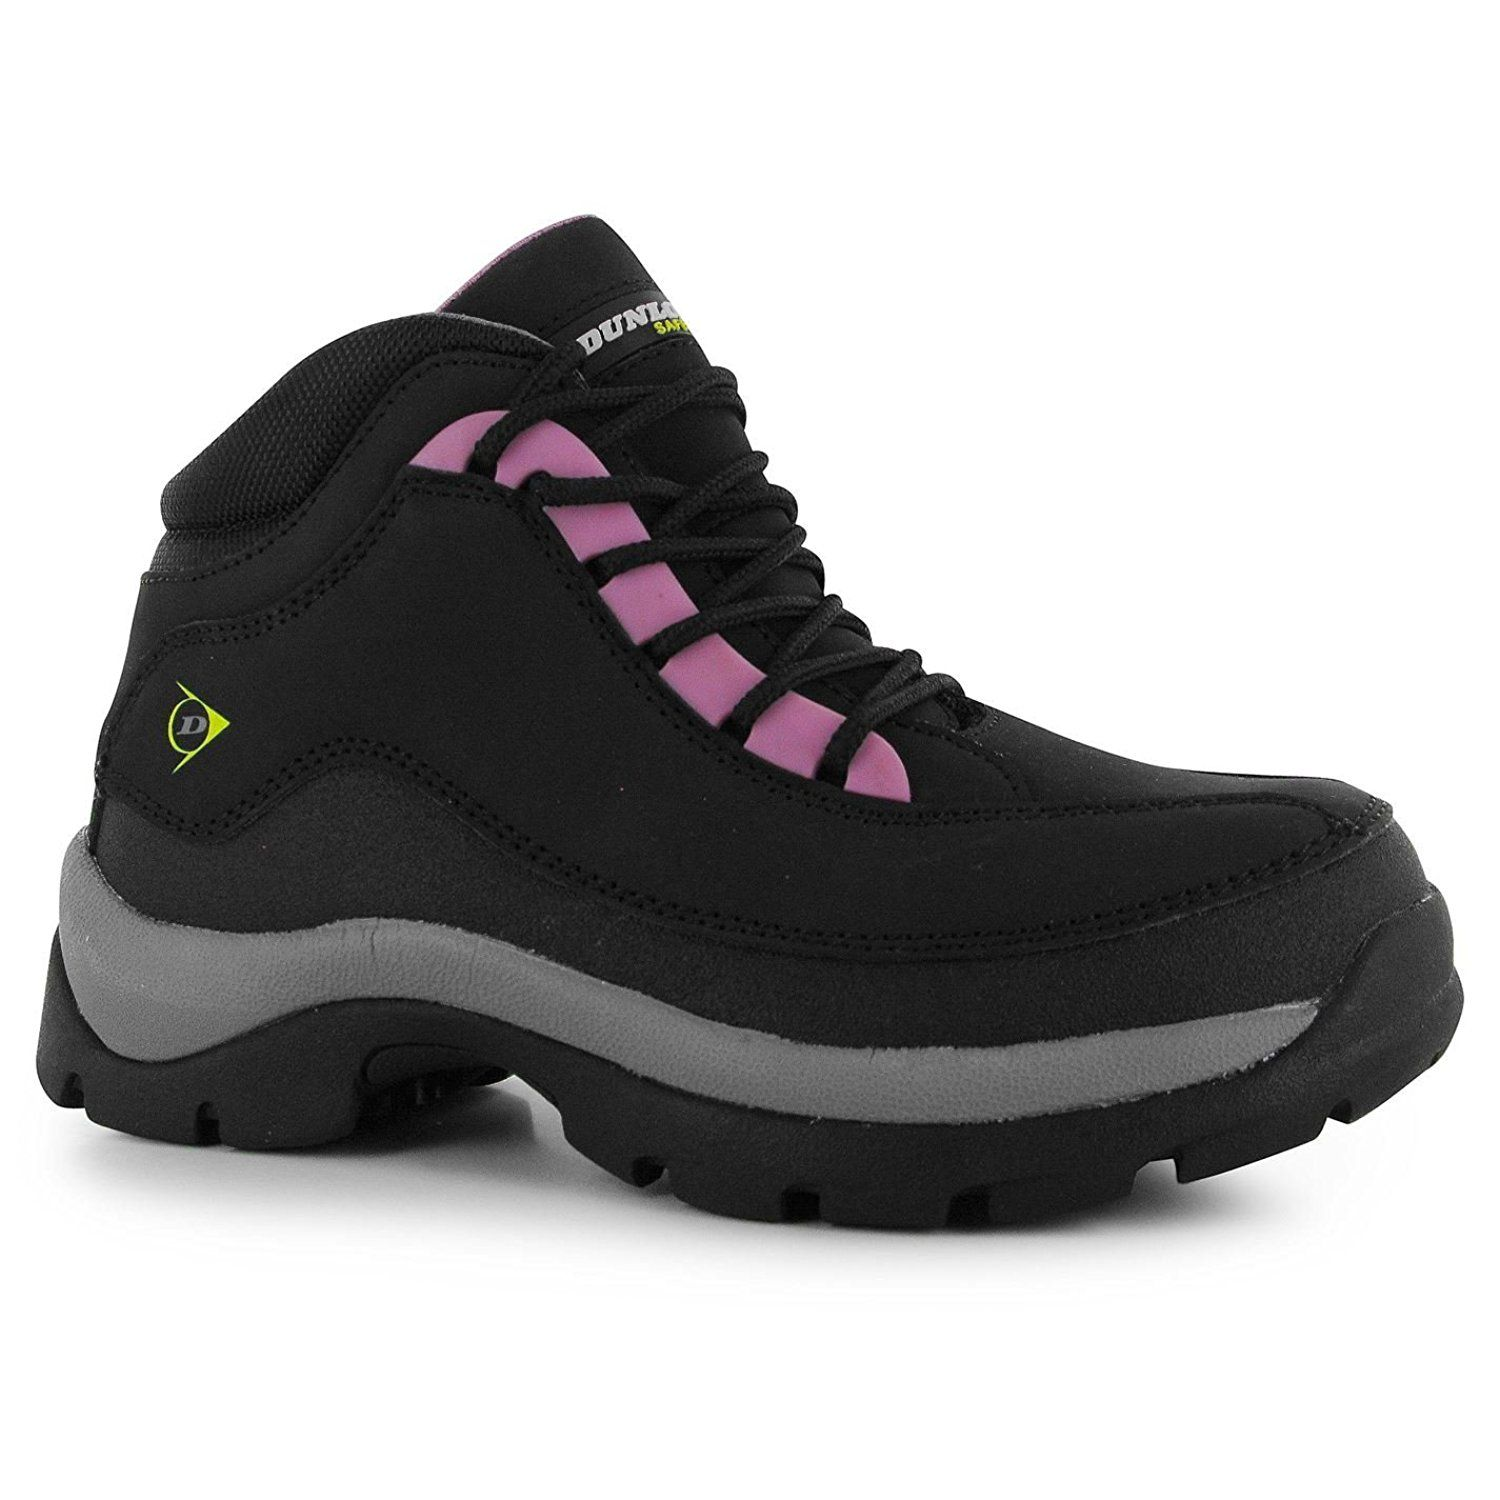 6a81f9510f7 Dunlop Womens Safe Hike Ladies Safety Boots Ladies Lace Up High Cut ...